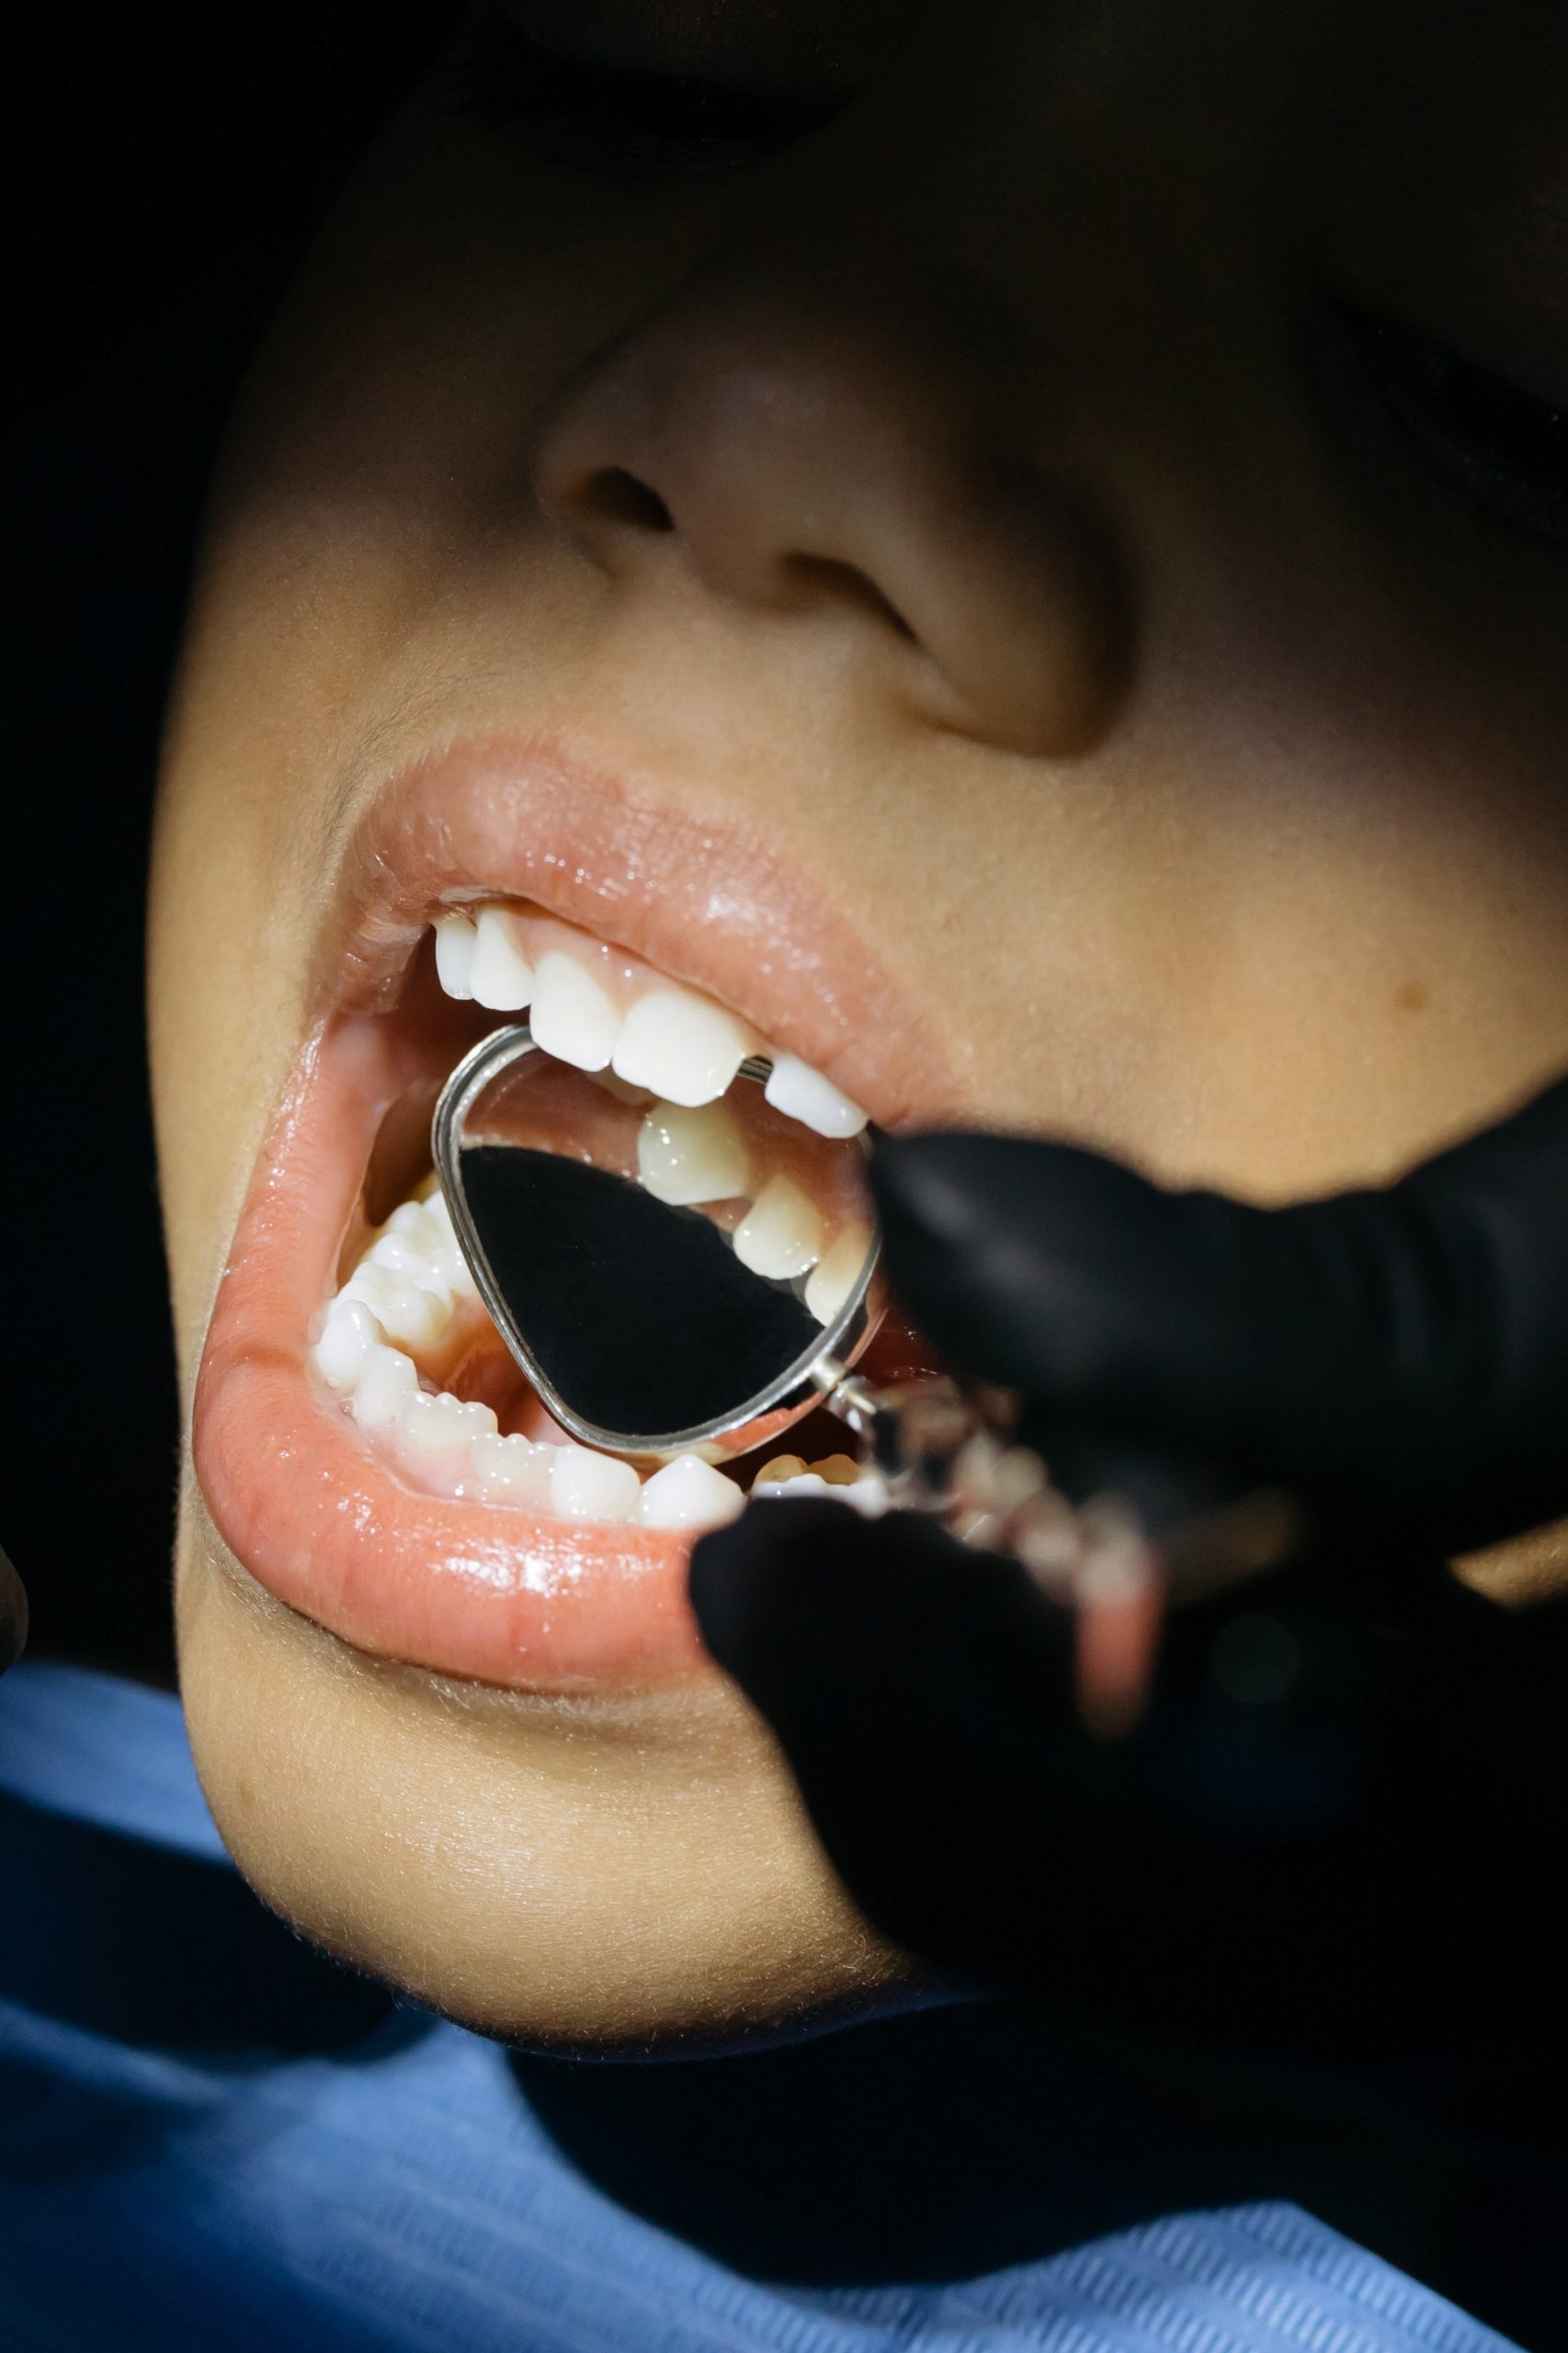 What Are The Goals Of Orthodontics?